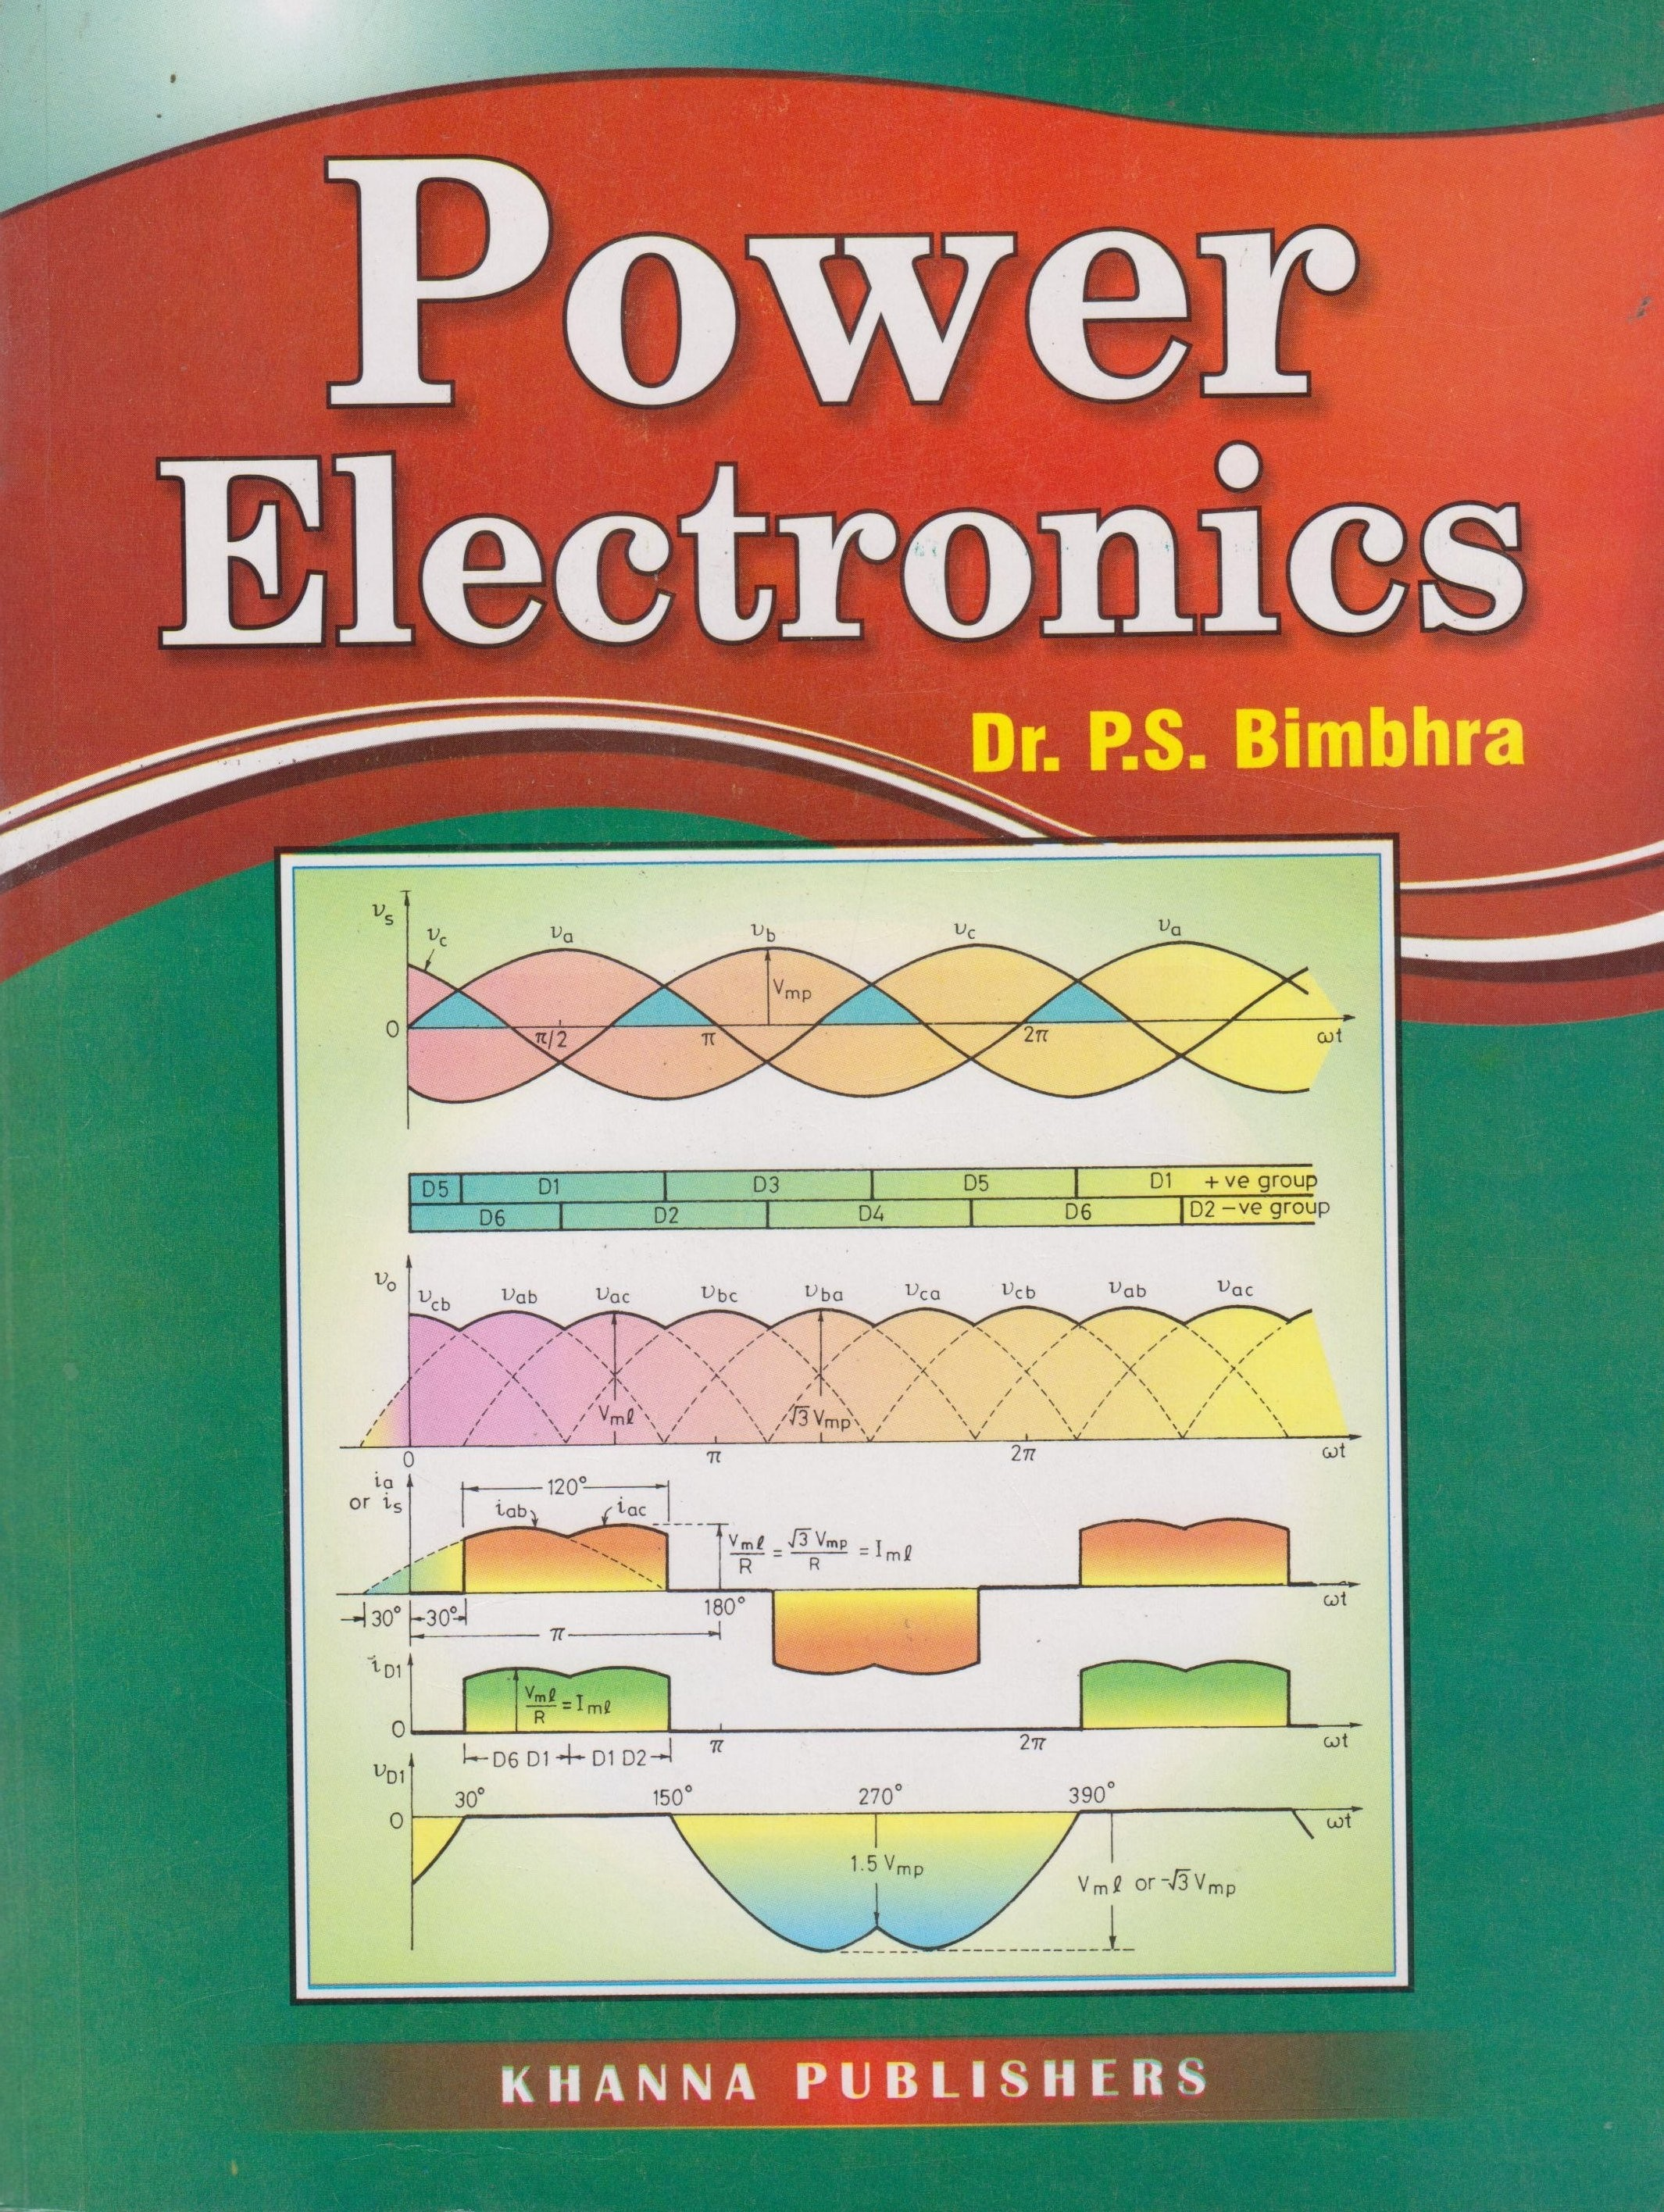 Can anyone recommend a good book in power electronics